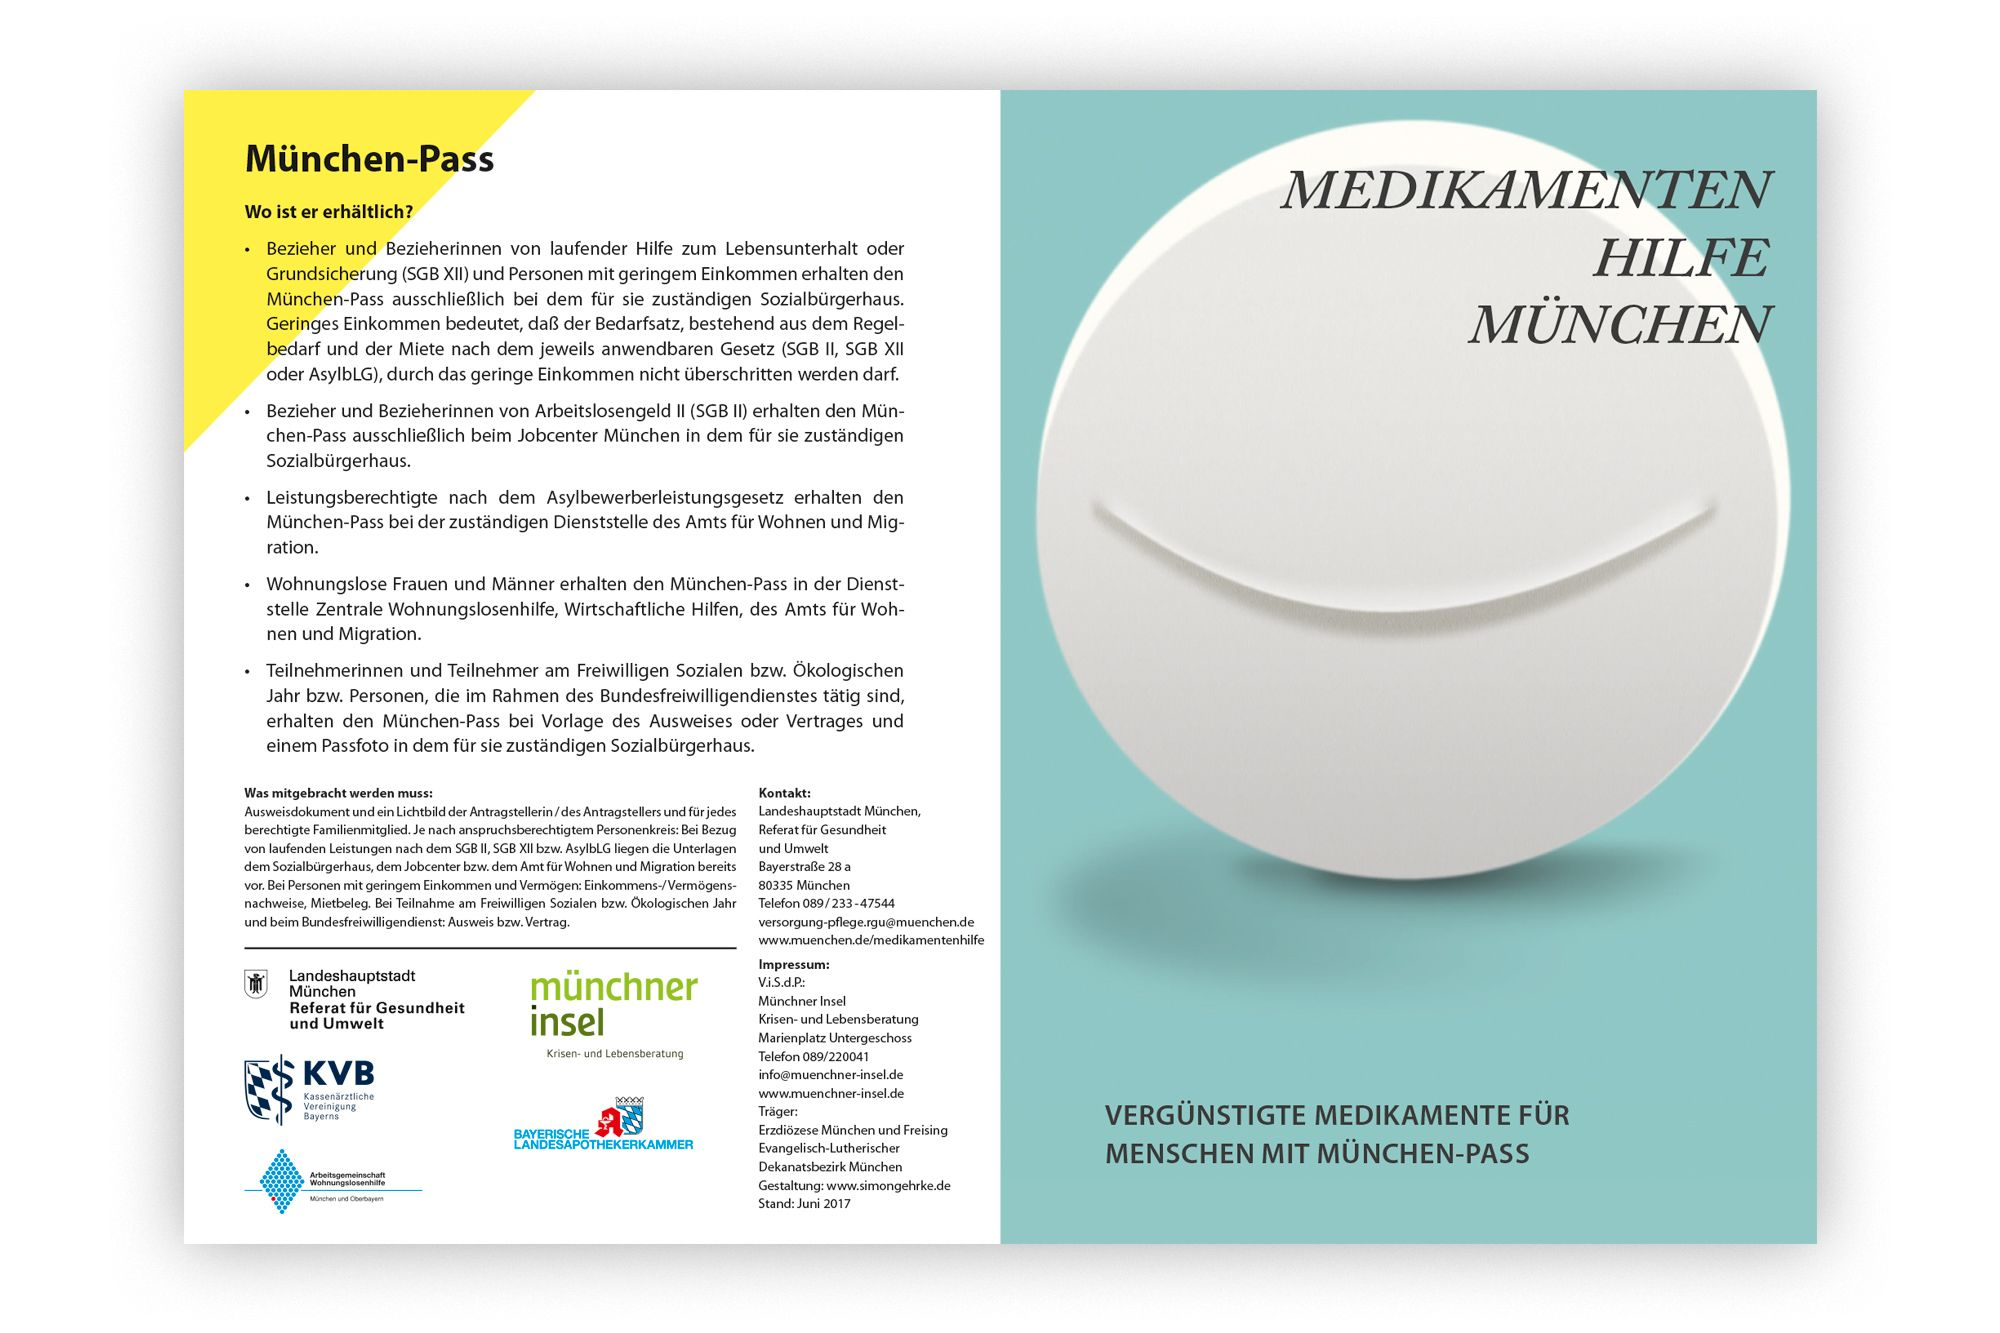 Medi Flyer 2017 Ly01 1